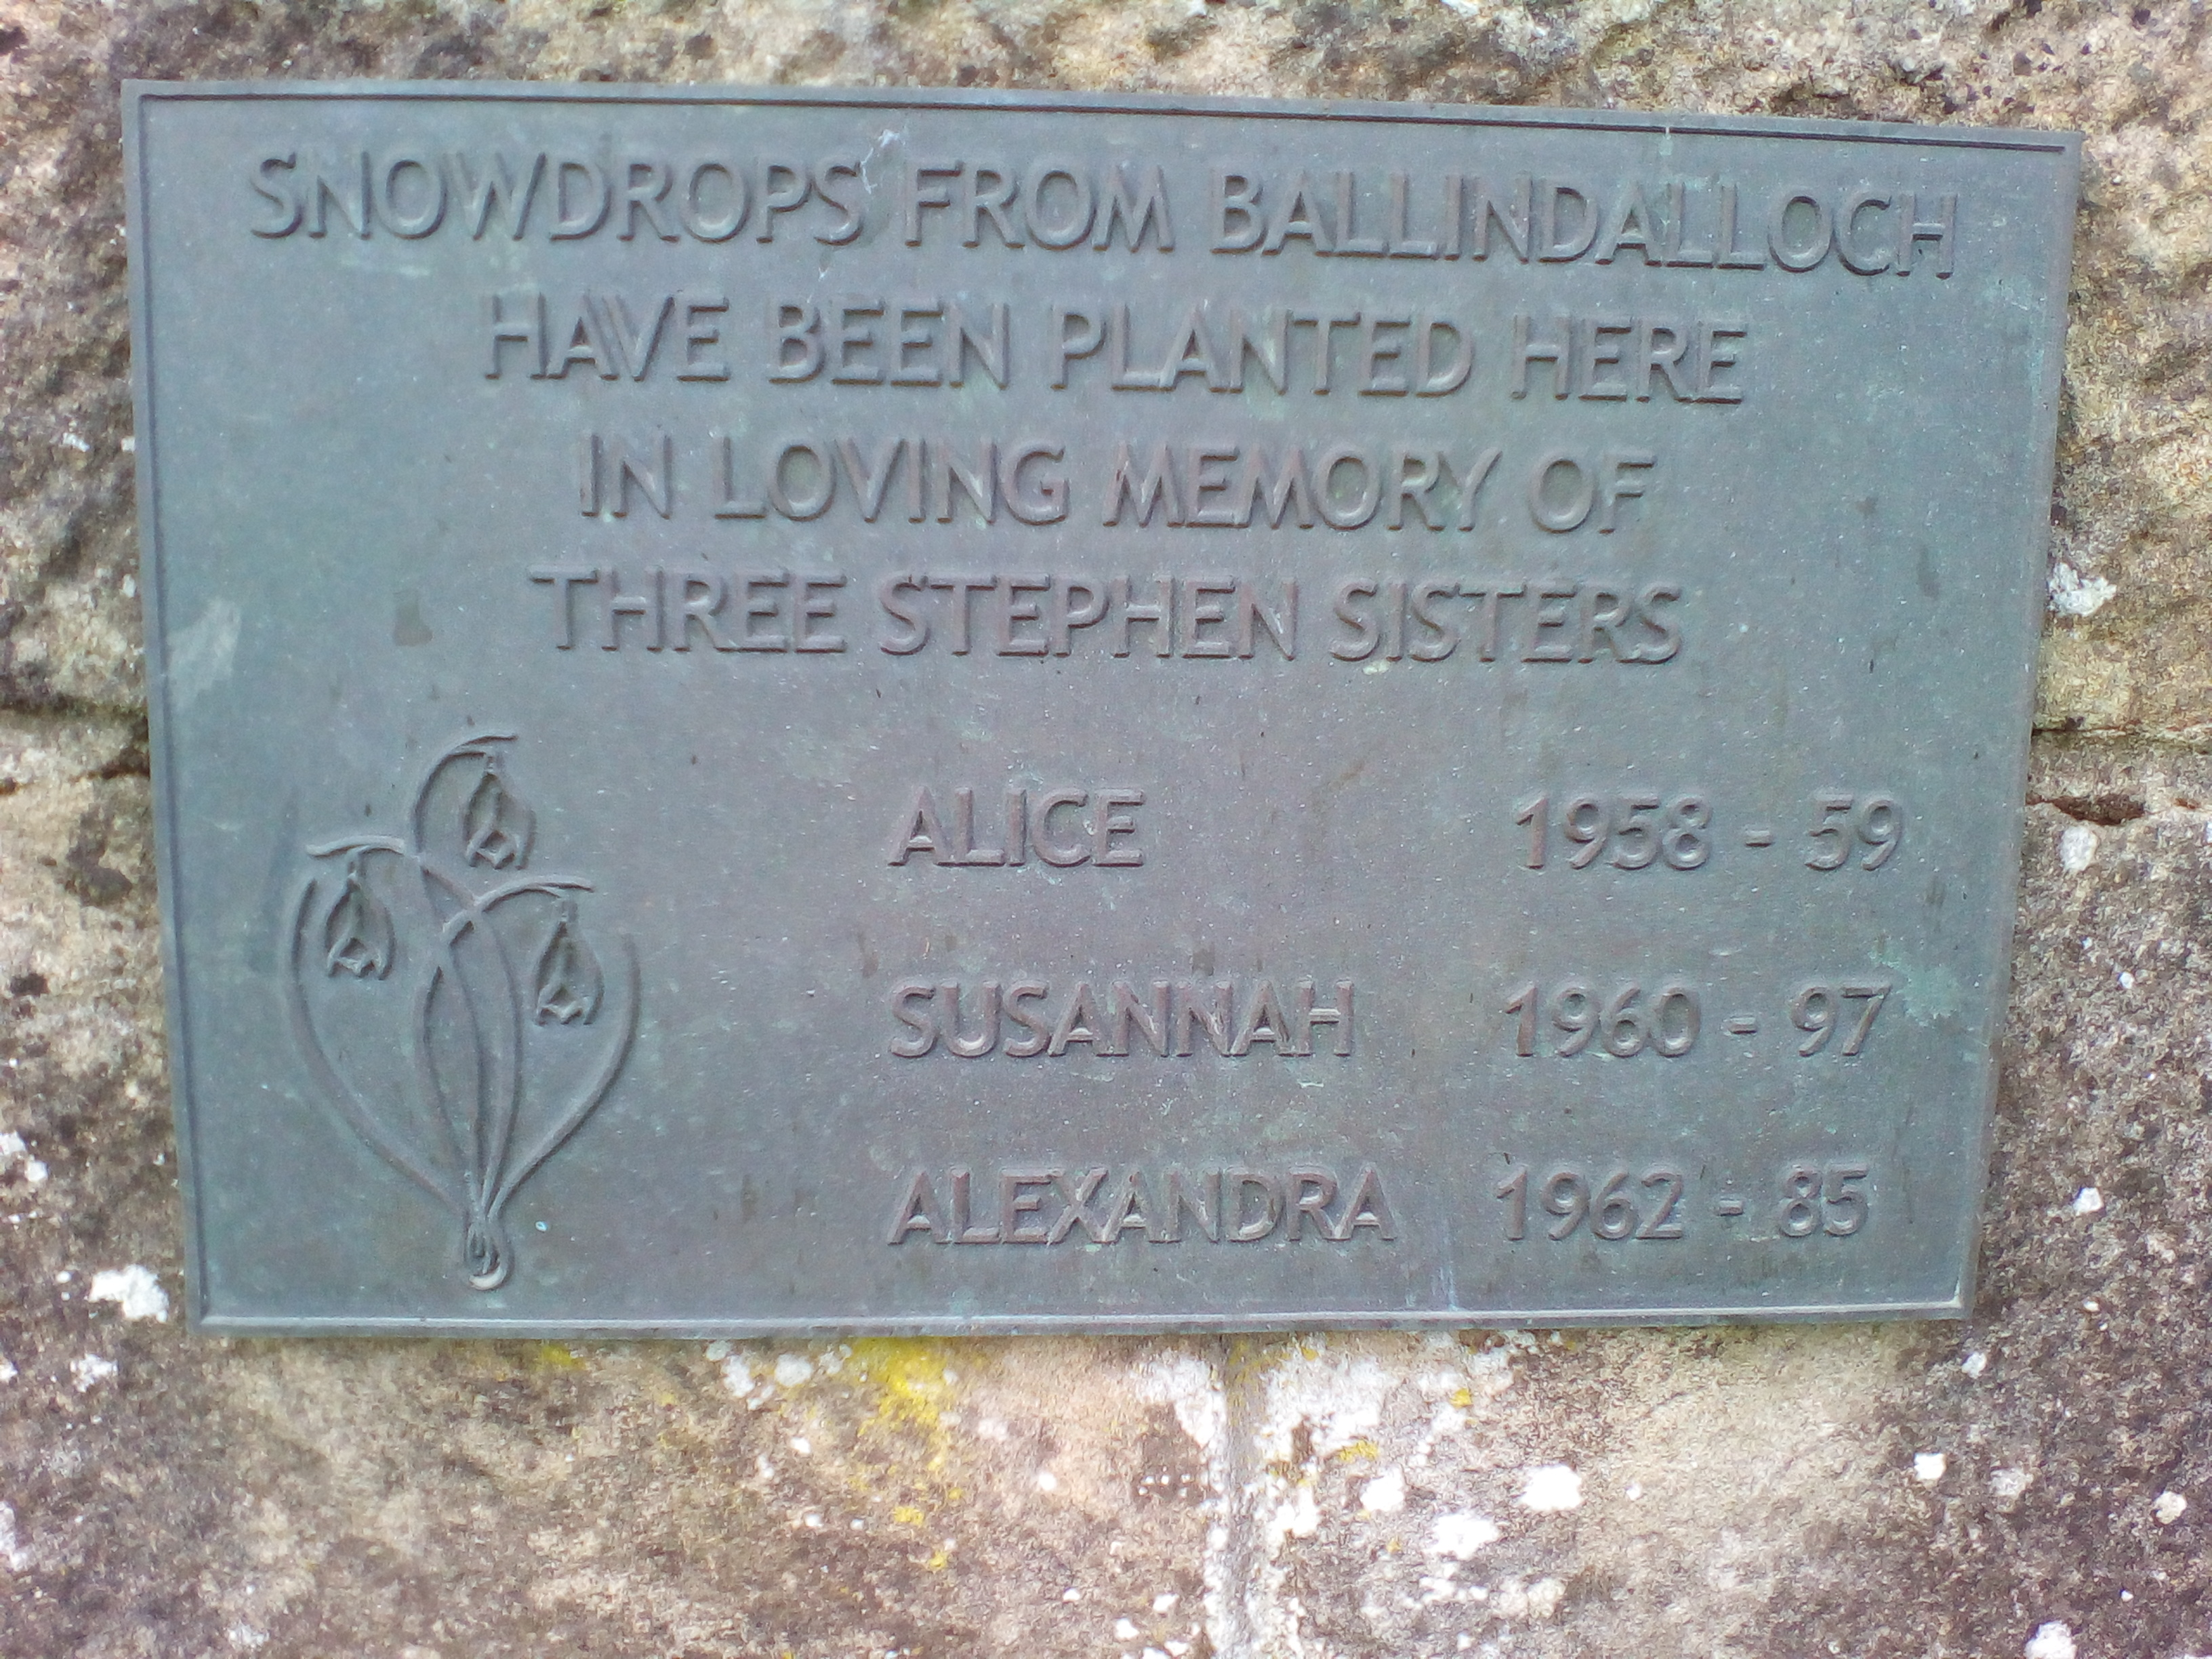 Memorial plaque to Stephen sisters